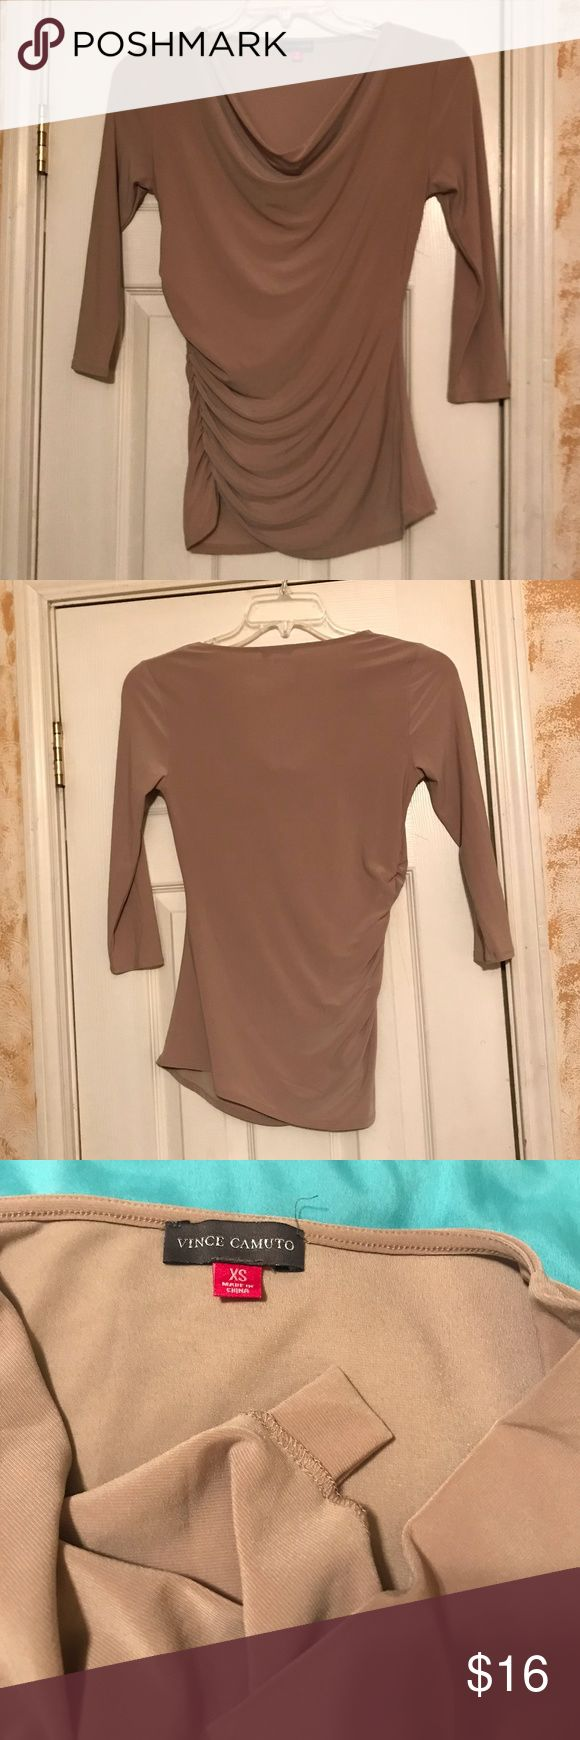 "Size XS Vince Camuto Sexy Nude Fitted Long Sleeve Size XS Vince Camuto Sexy Nude Fitted Long Sleeve Top  Previously owned and worn very gently!  Sexy AF stretchy and fits perfectly!  Nude colored extra small ruched on the sides long sleeve top.  Slight pilling but not noticeable at all! Bust (pit to pit) 15"" Length (shoulder to bottom) 25"" Pictures are part of description! Vince Camuto Tops Blouses"